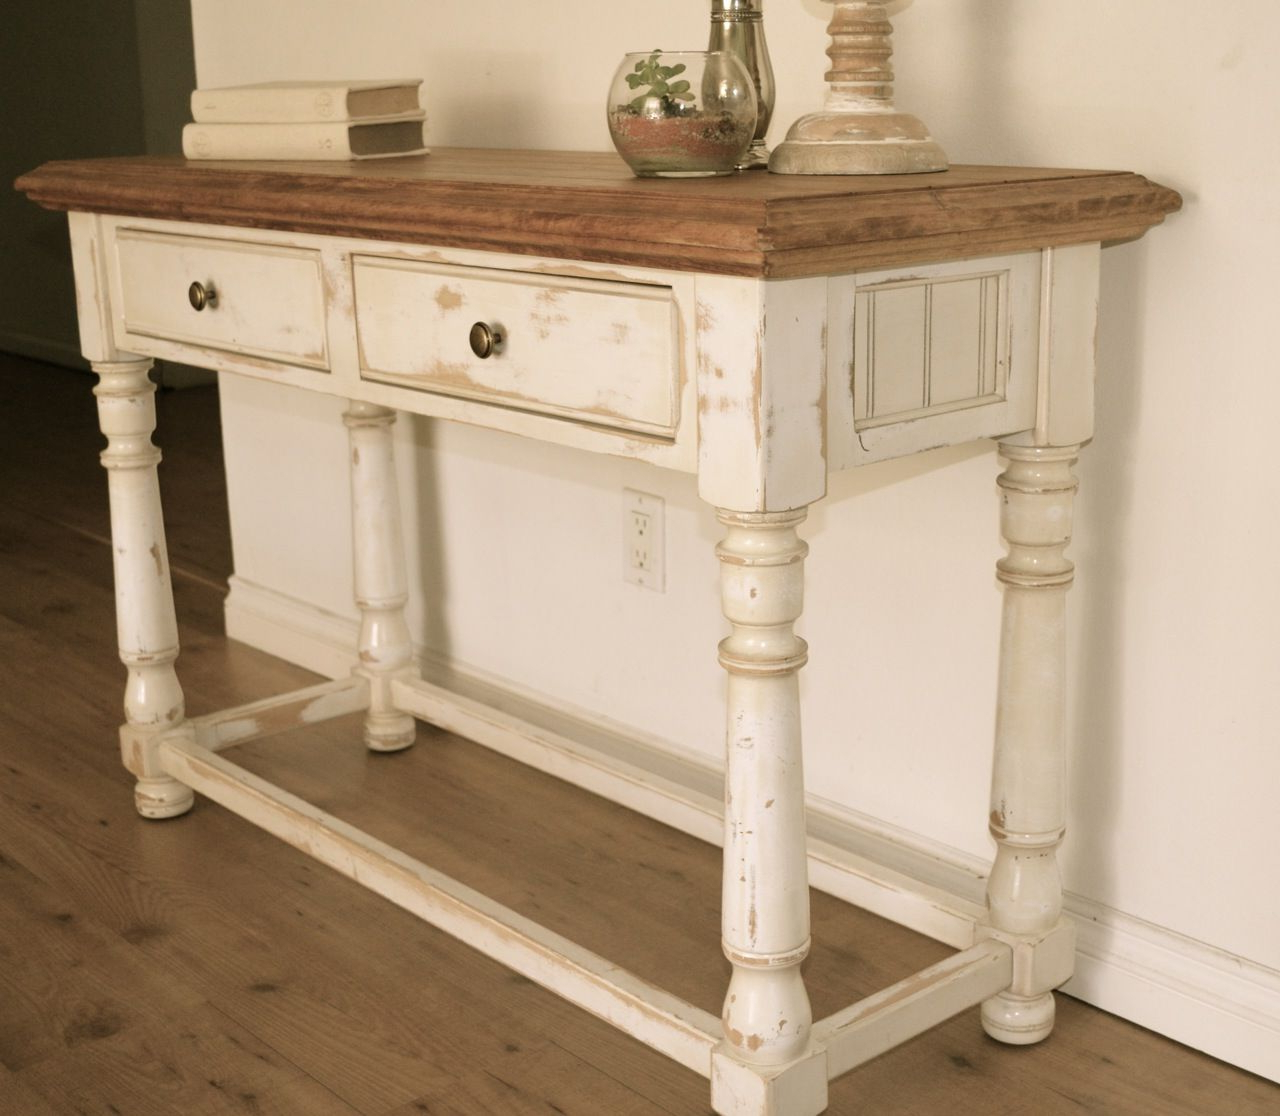 Farmhouse Style Console Table. Distressed White Paint, Light Stain Throughout Antique White Distressed Console Tables (Gallery 1 of 20)